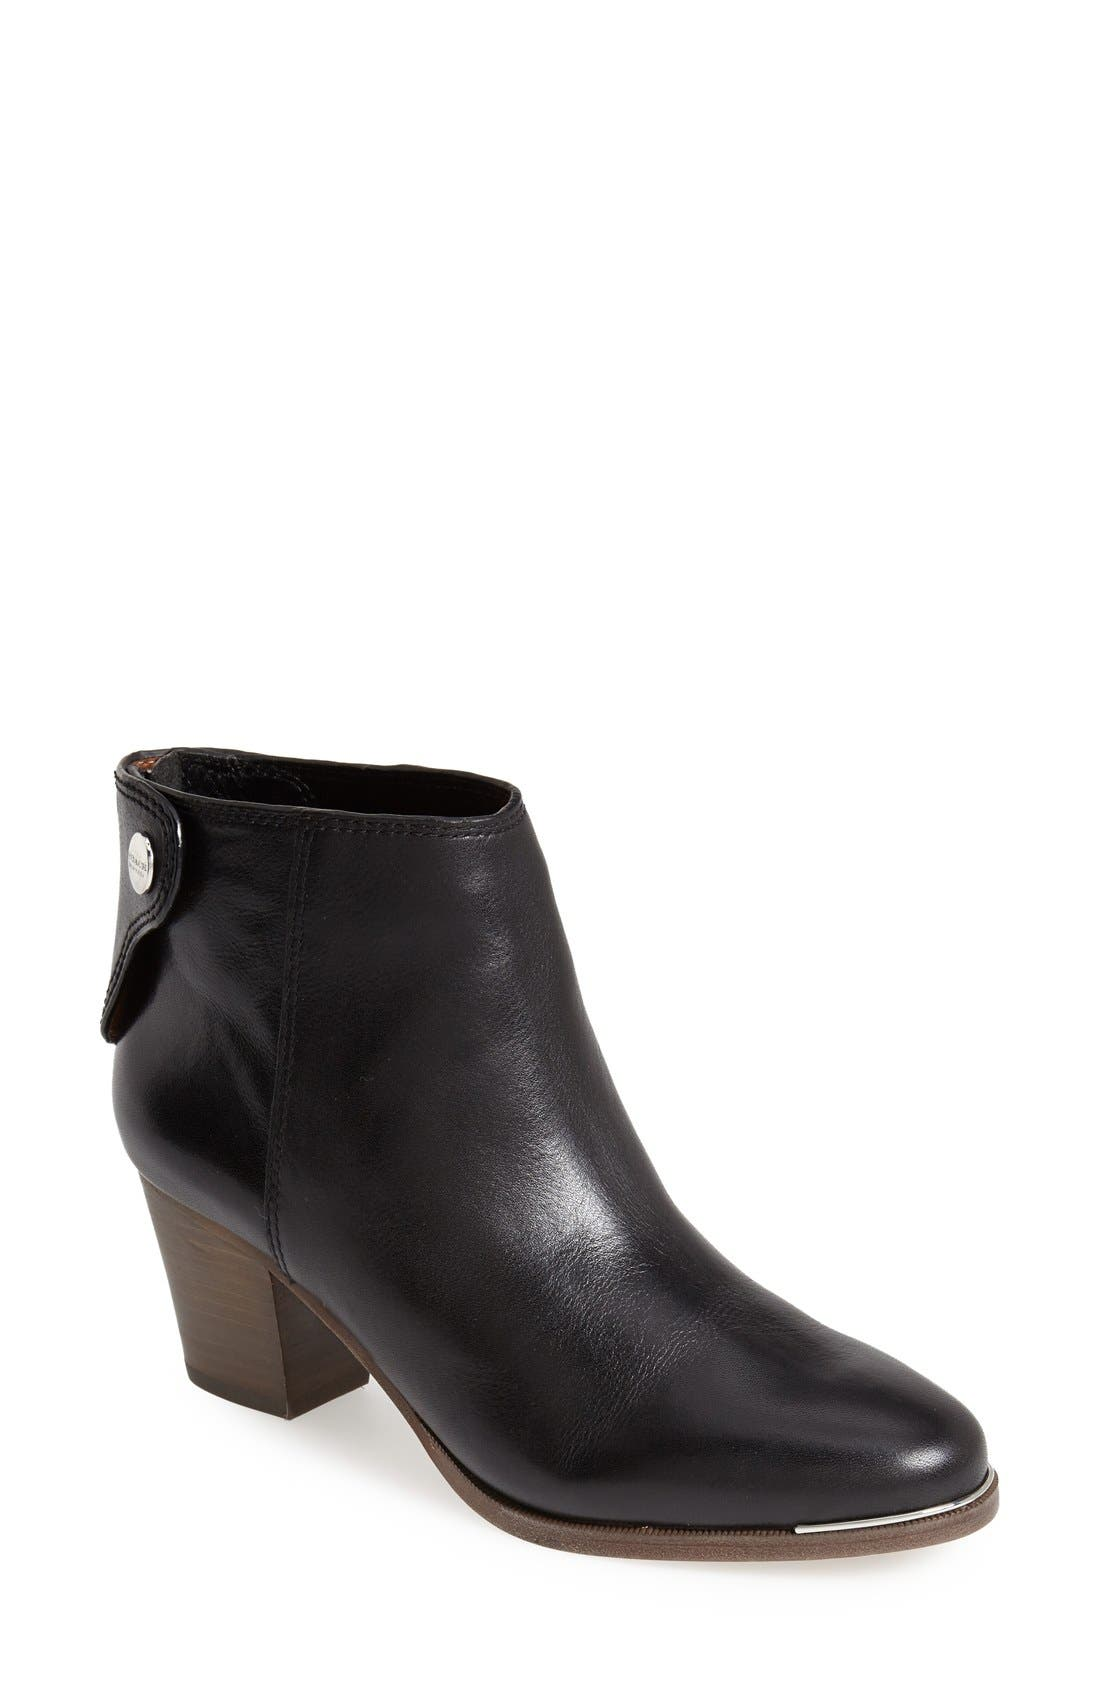 Alternate Image 1 Selected - COACH 'Waldorf' Leather Bootie (Women)